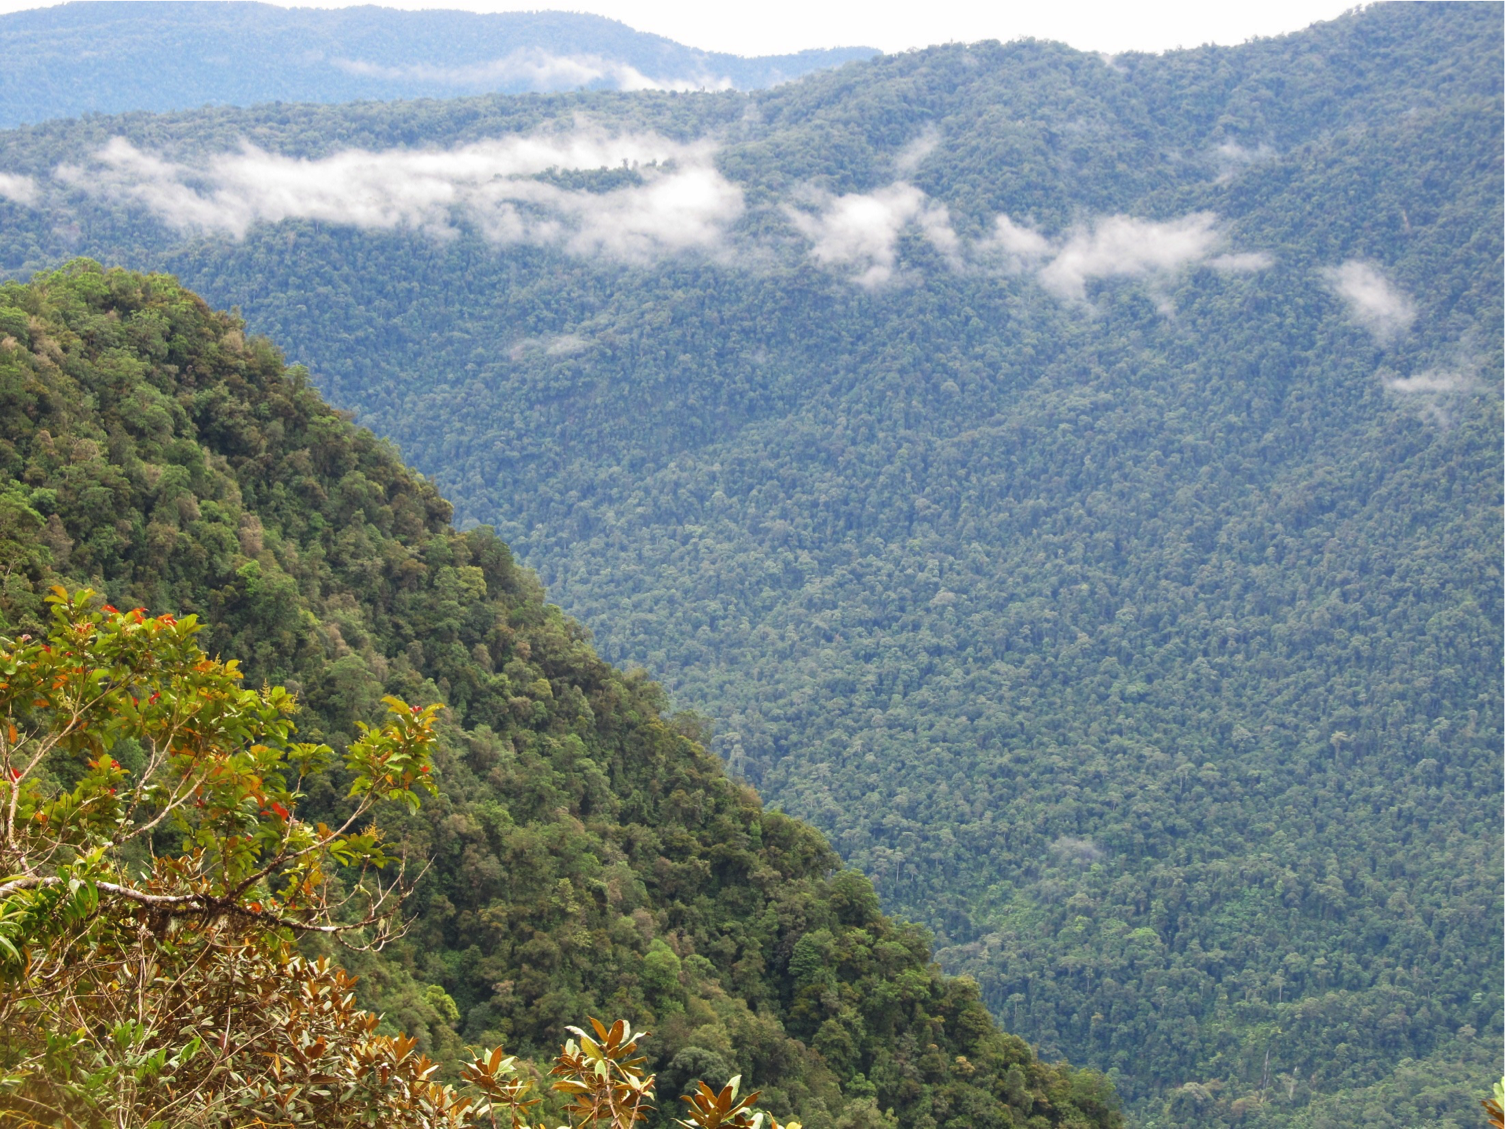 Steep and lush: Bird species generally inhabit narrow elevational zones on tropical mountains